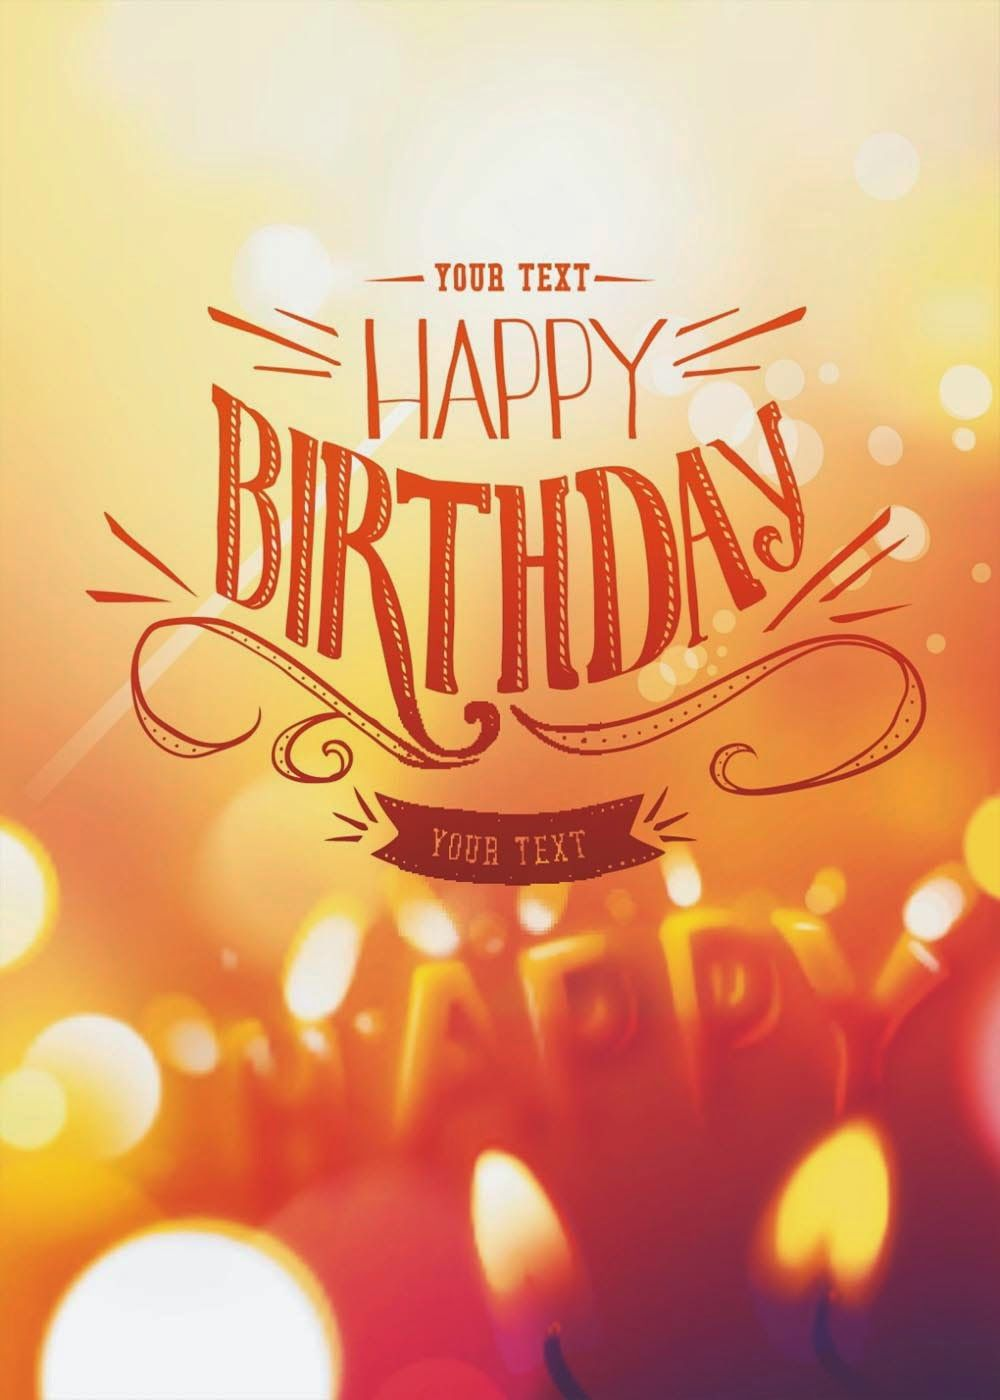 free birthday greeting cards to send by email ; 92b7e7871281eeac8a2a119761fe6da0